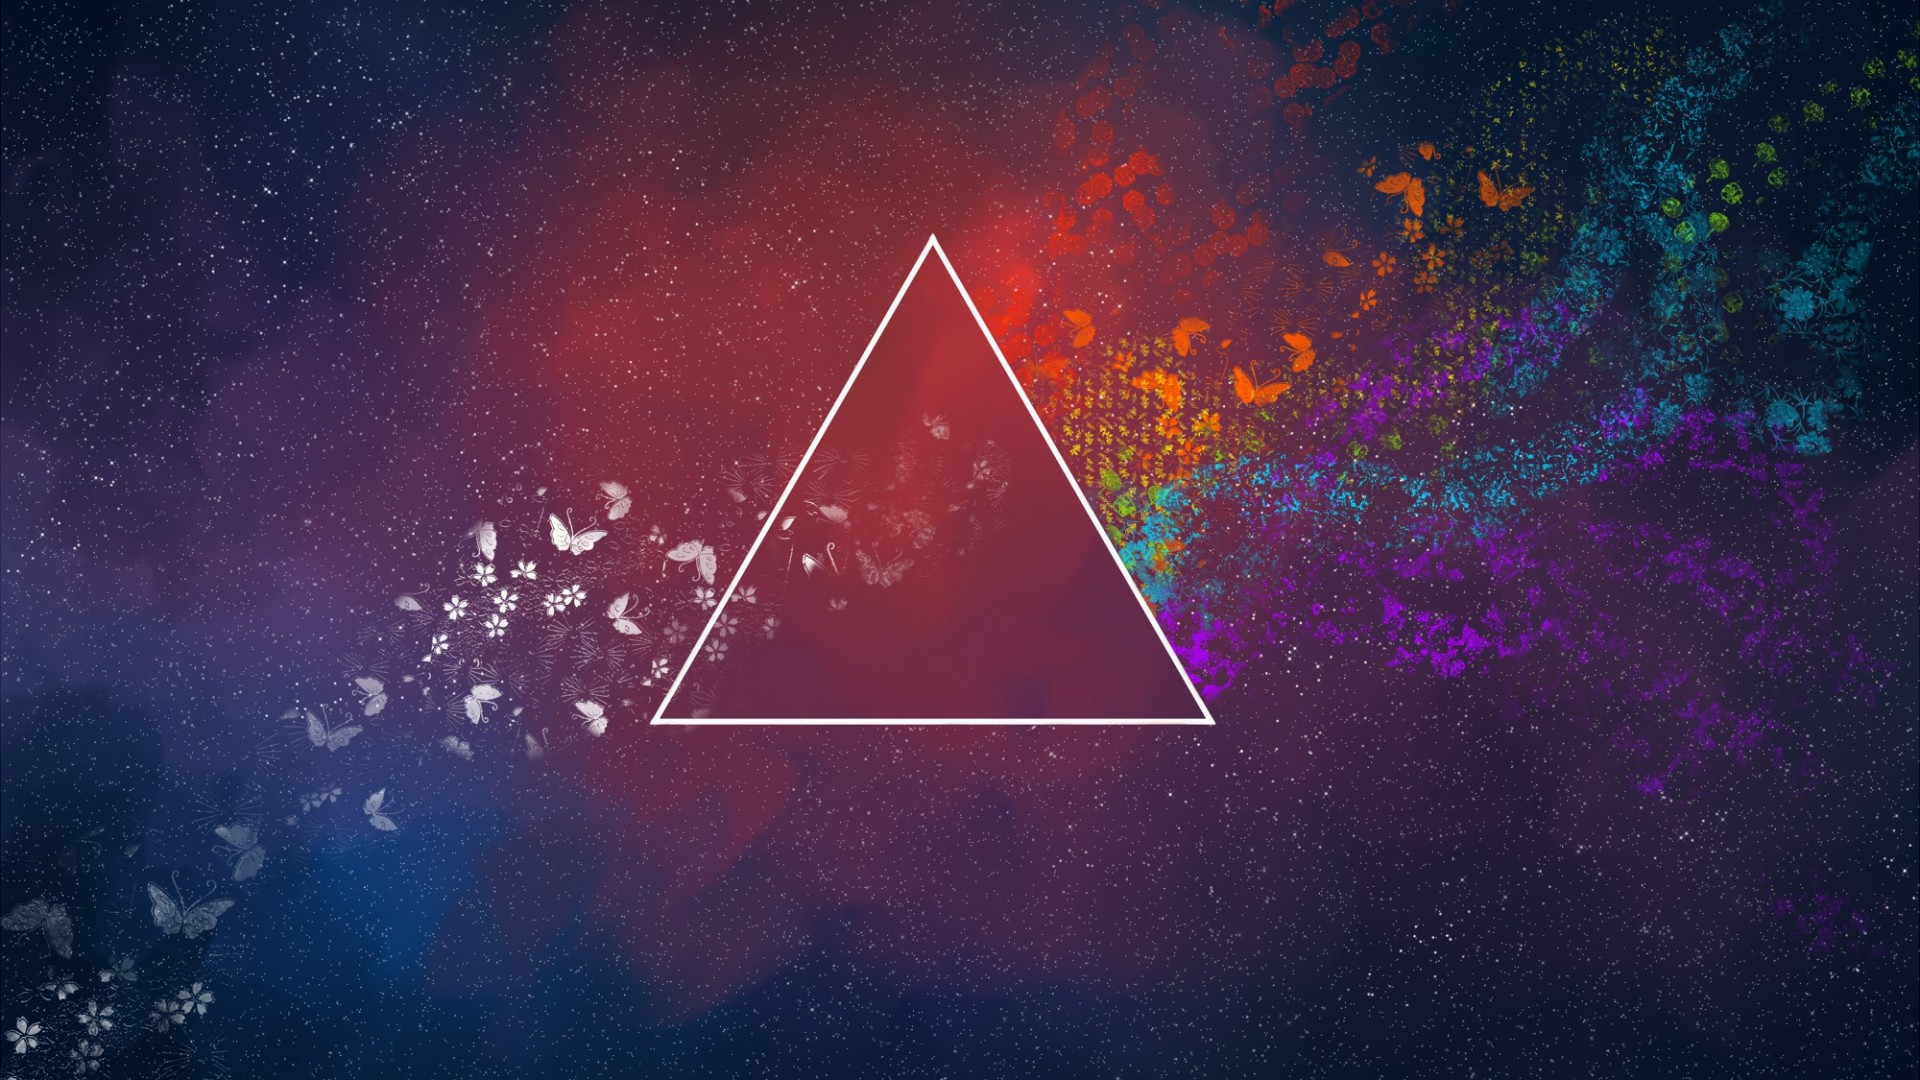 The Dark Side Of The Moon Triangle Abstract Pink Floyd Flowers